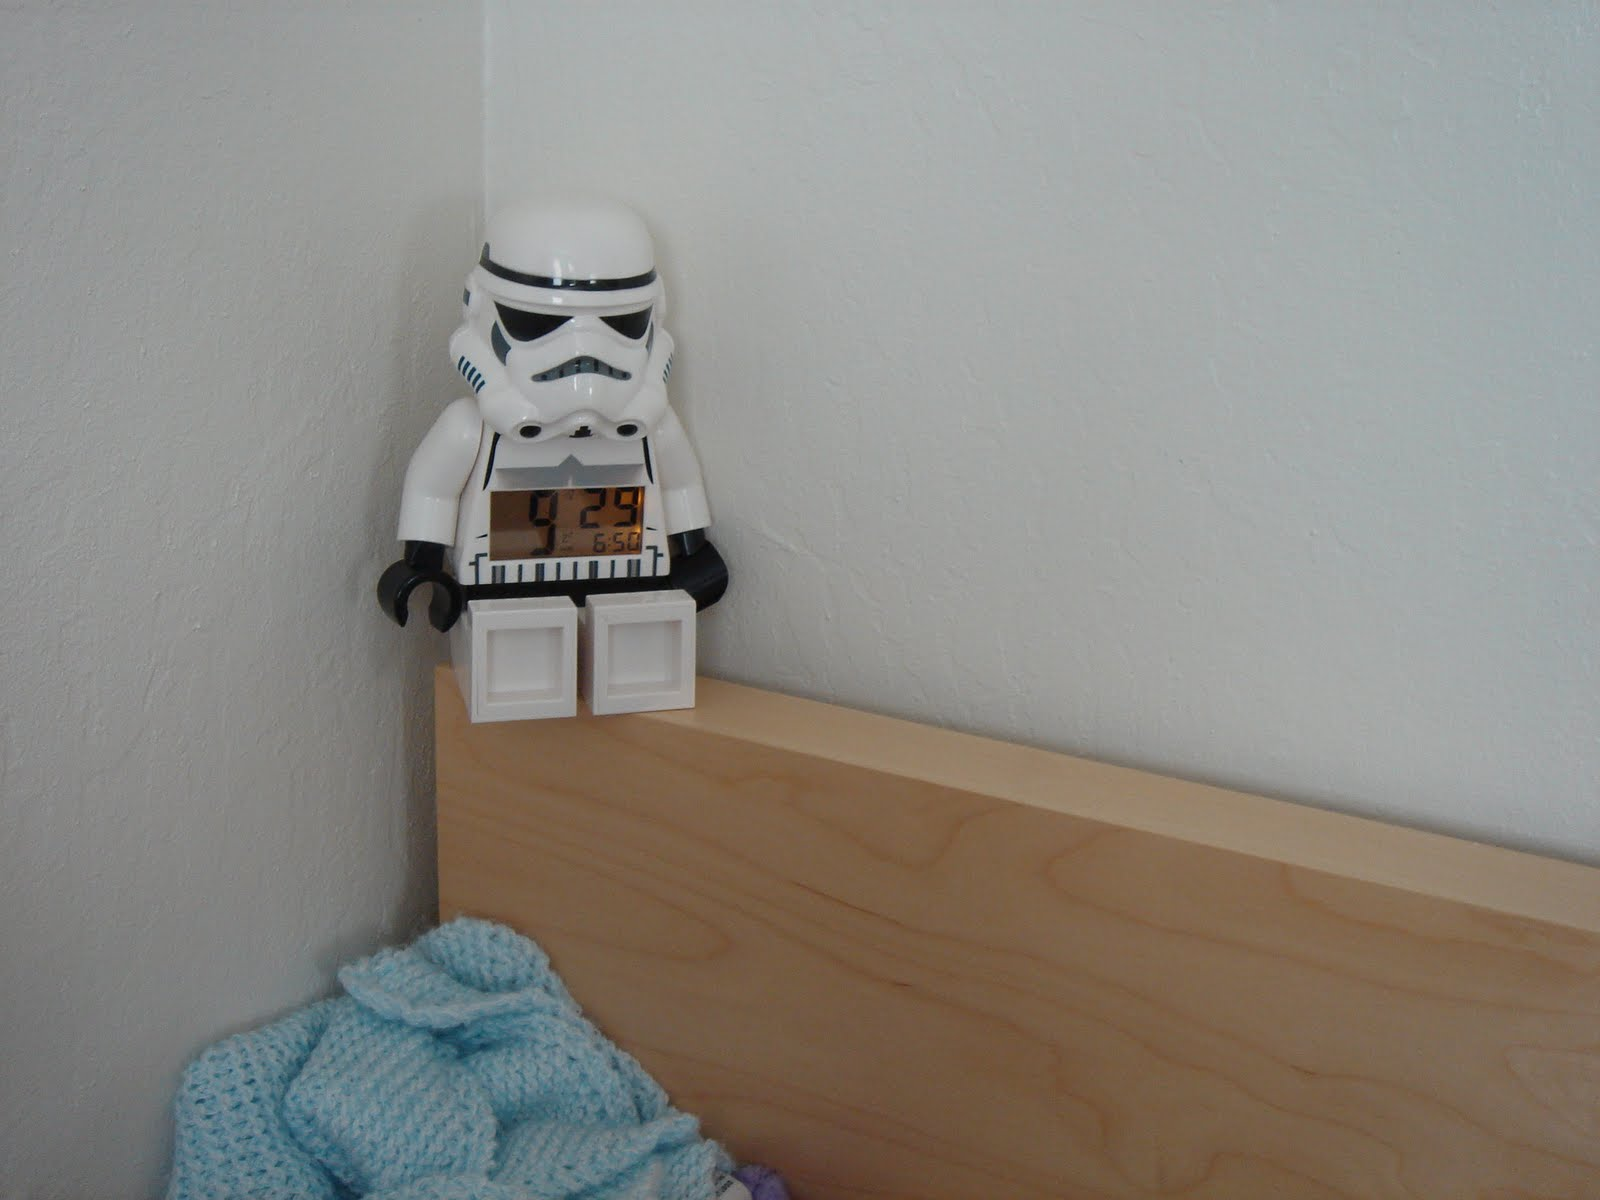 lego stormtrooper alarm clock instructions